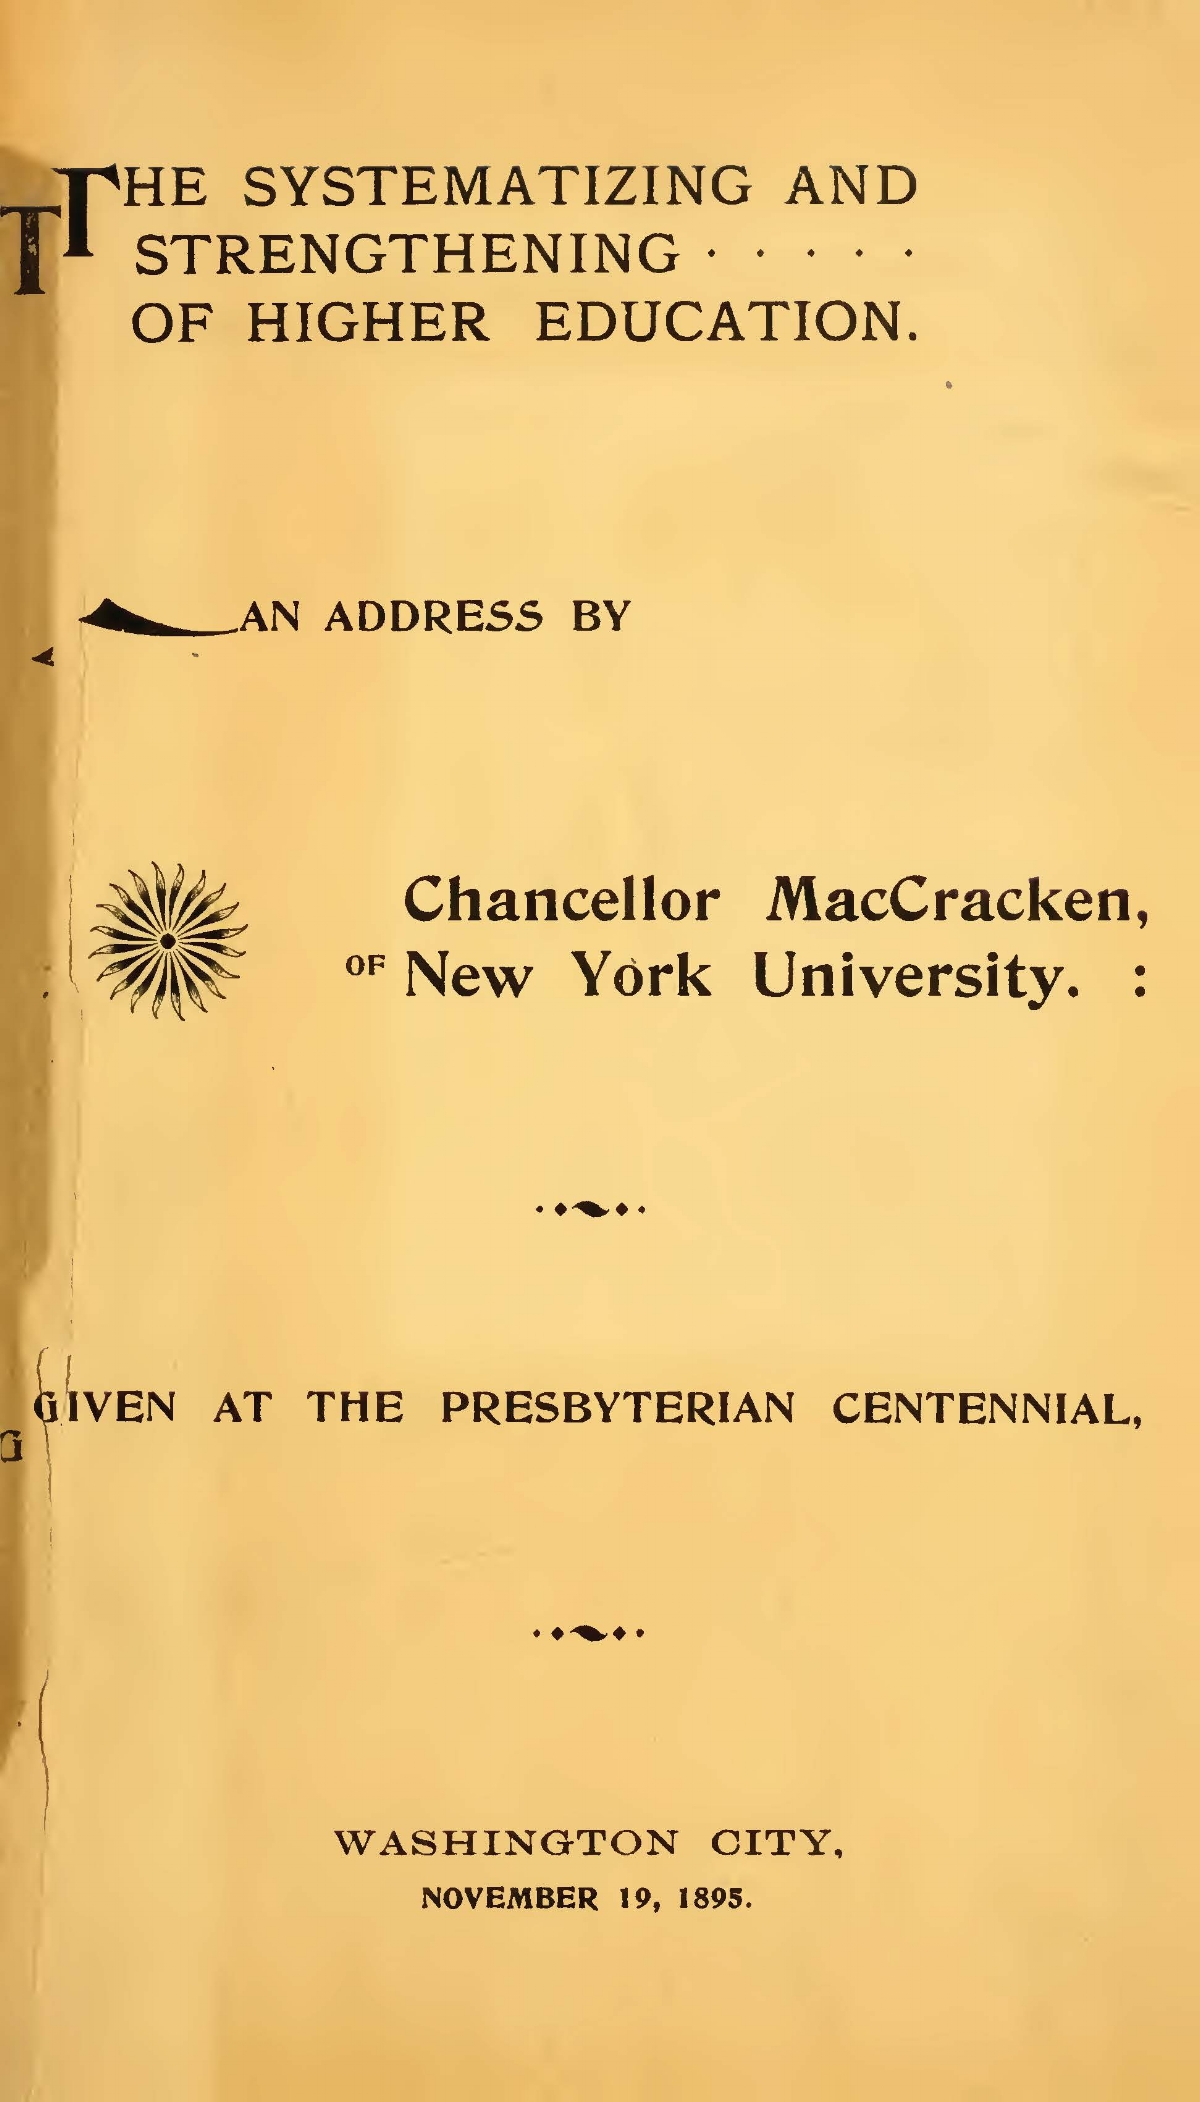 MacCracken, Henry Mitchell, The Systemizing and Strengthening of Higher Education Title Page.jpg